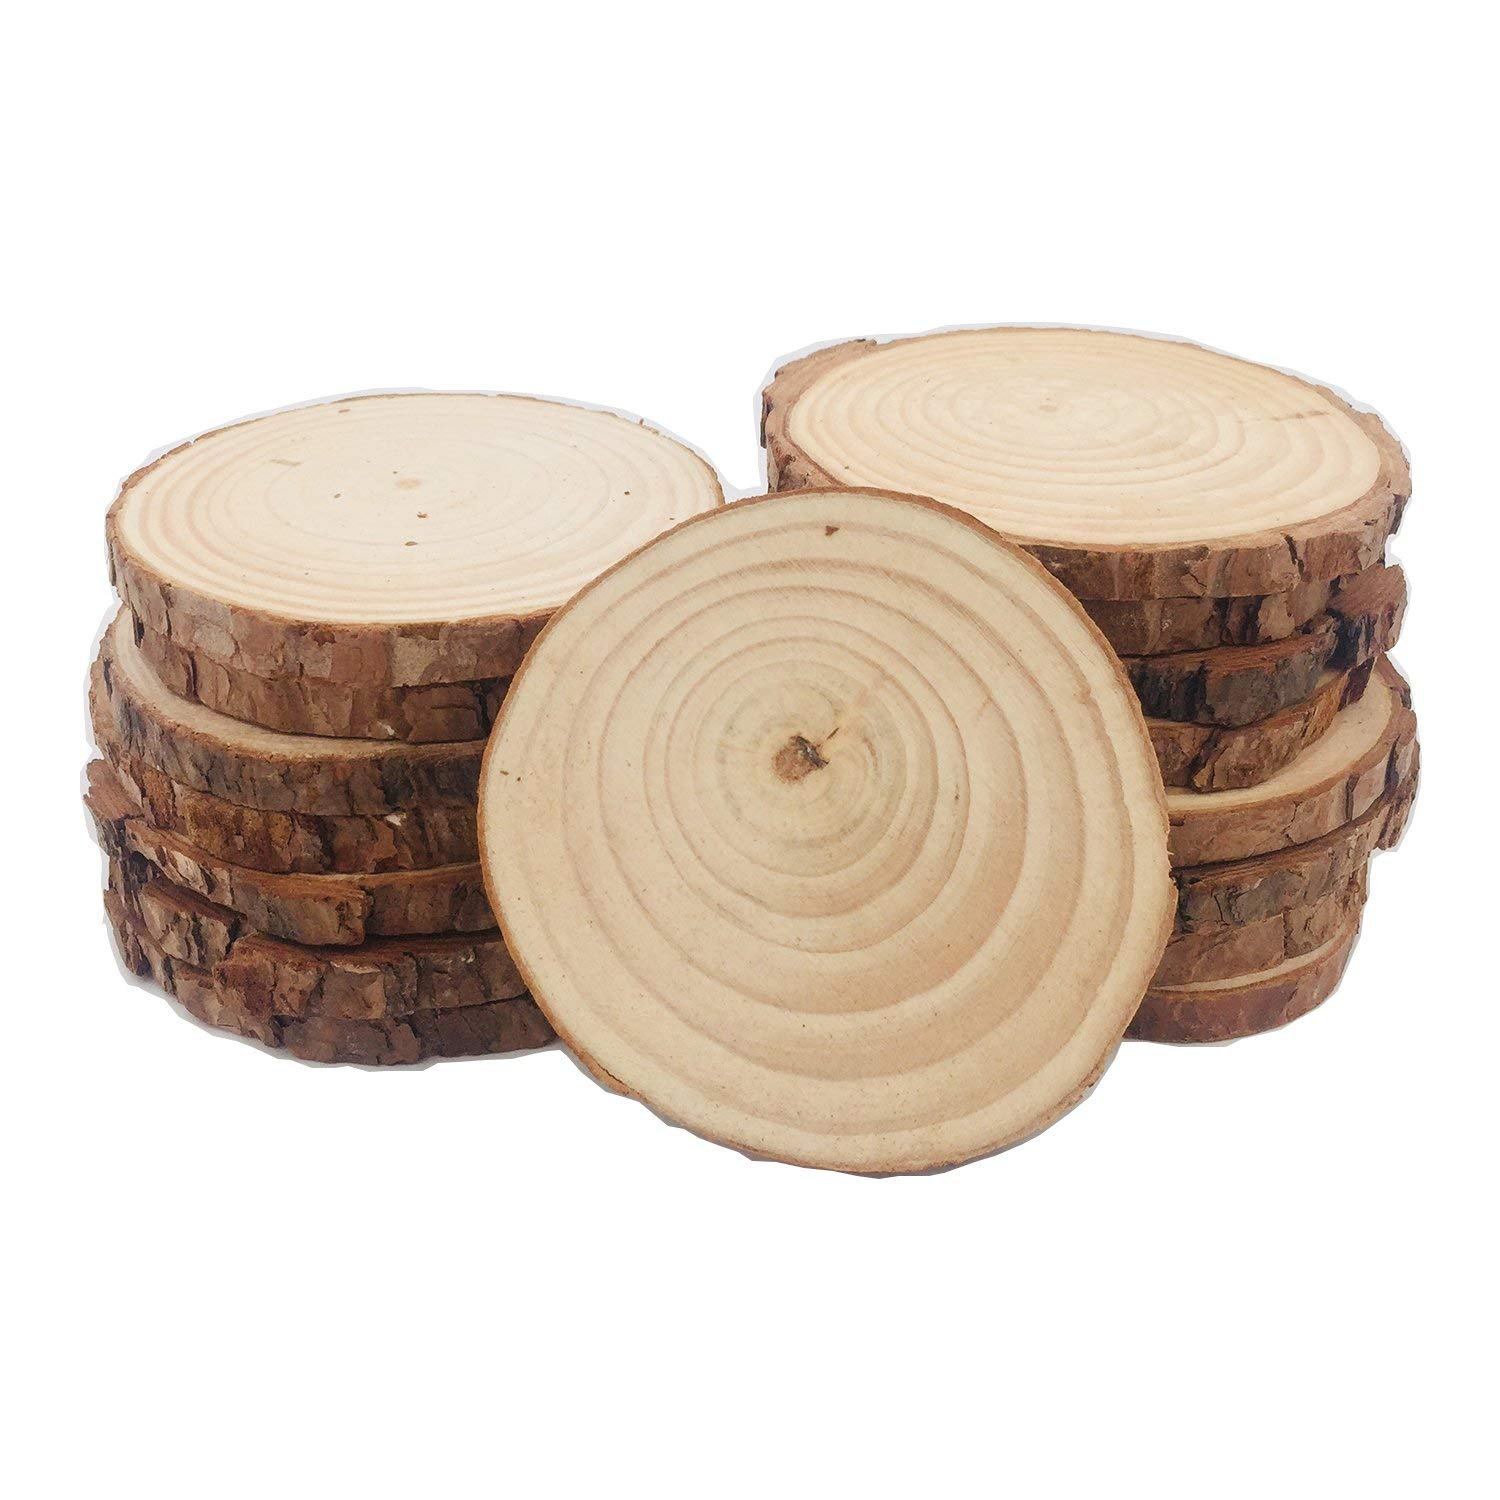 Binsn 12pcs 3.5-4 inch Unfinished Natural Wood Slices with Bark for Crafts Tree Bark Log Discs for DIY Crafts Christmas Rustic Wedding Christmas Ornaments by